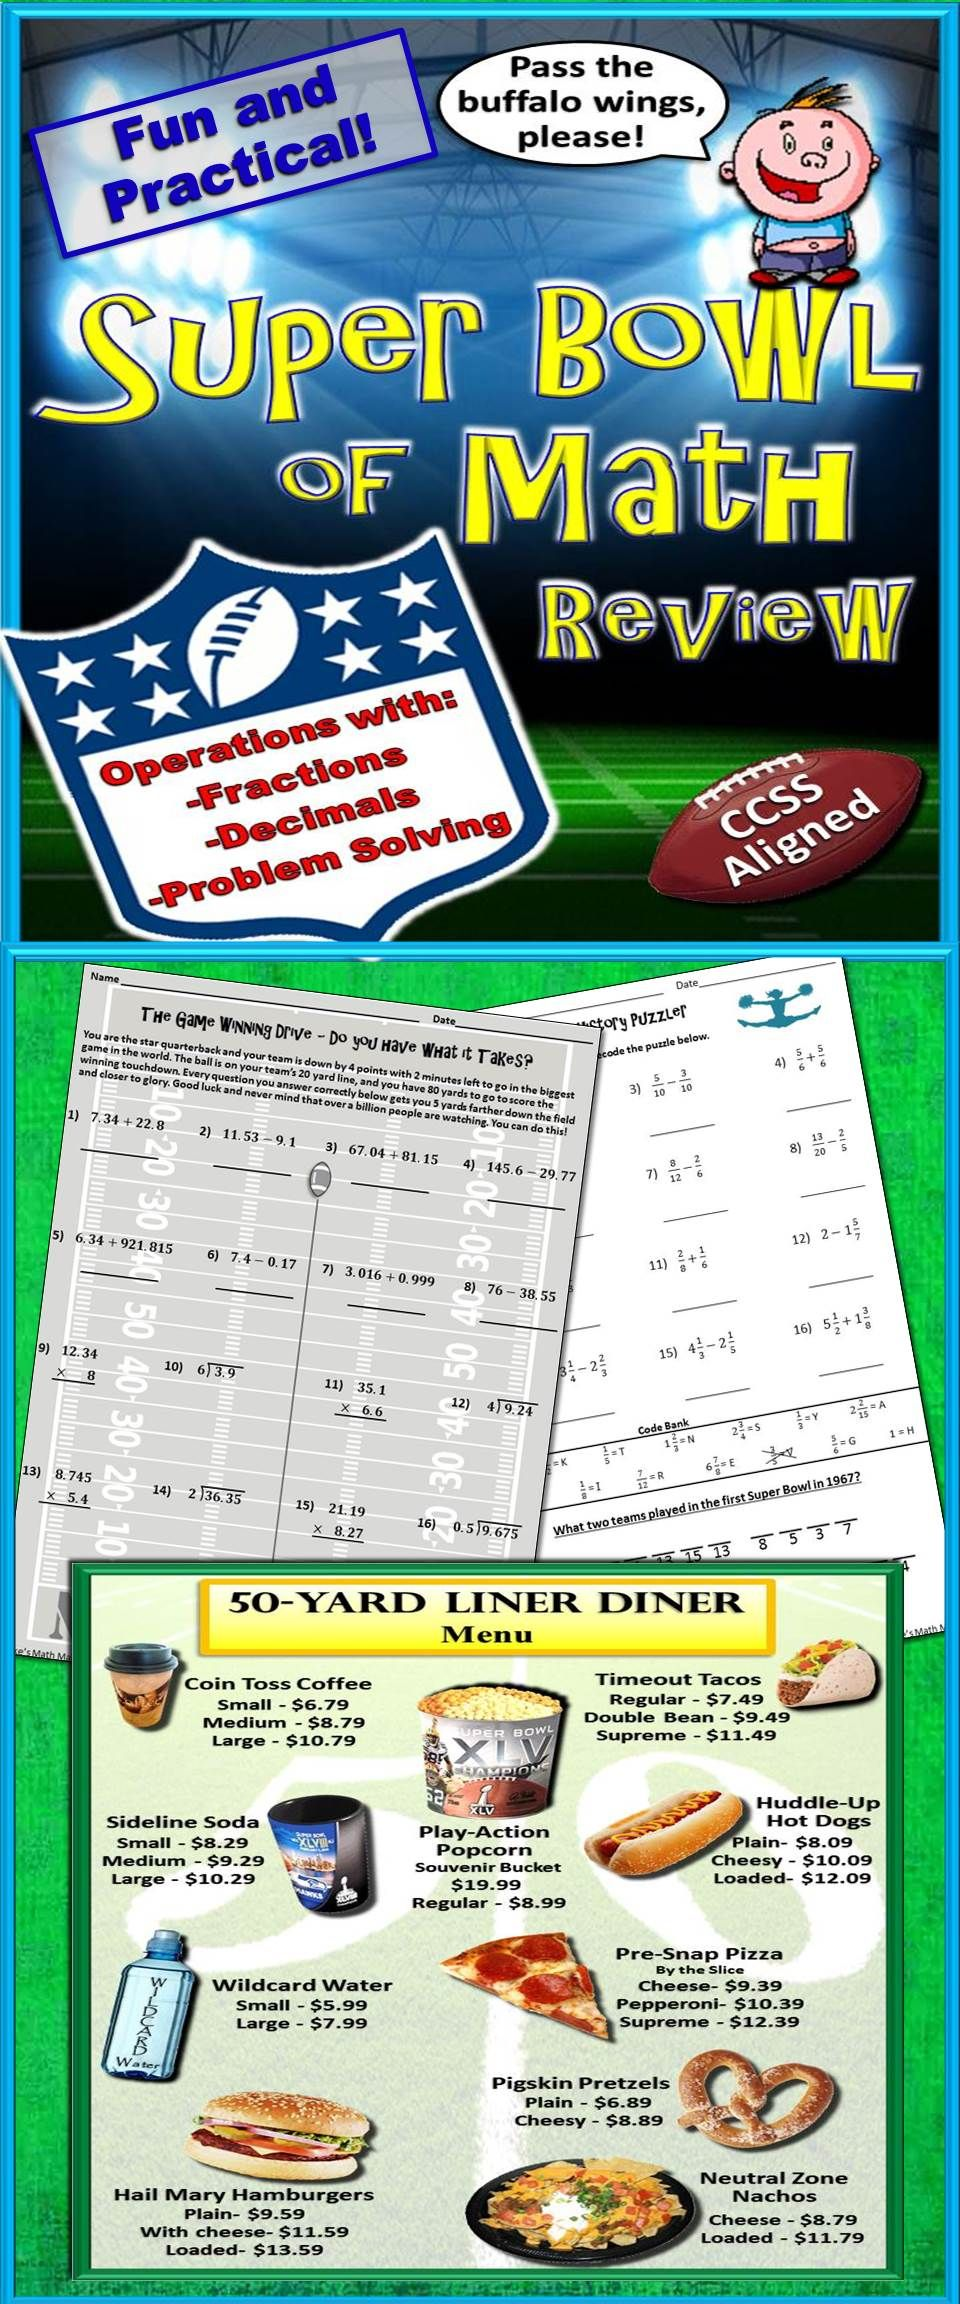 Super Bowl Themed Math Review Packet Ccss Aligned Math Review Math Math Manipulatives [ 2304 x 960 Pixel ]